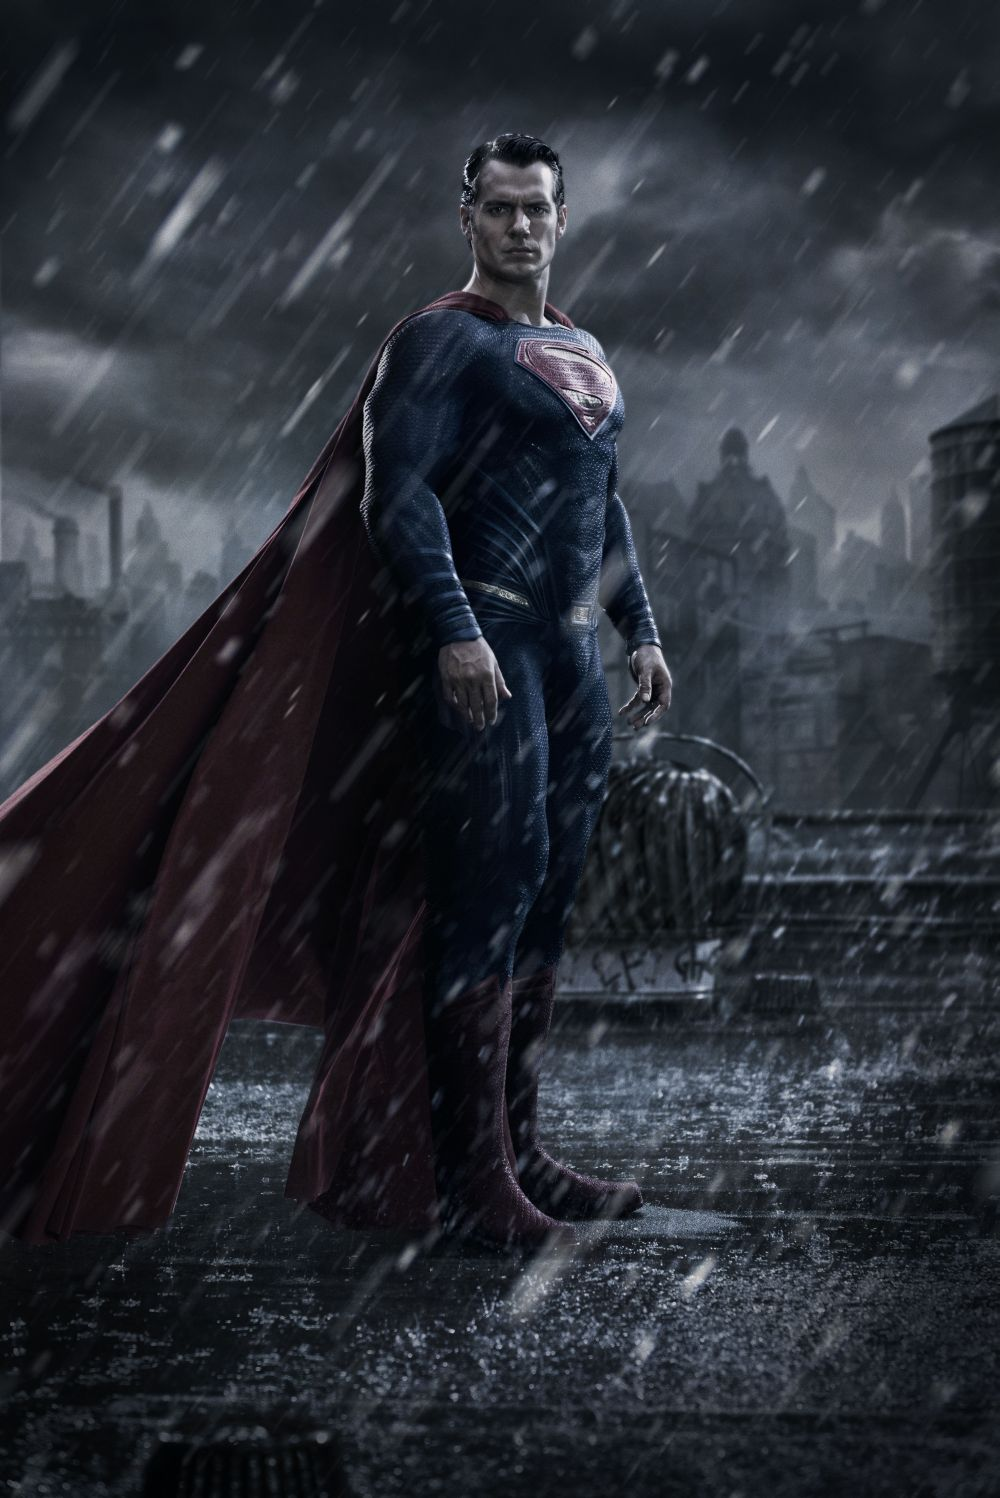 galeria fotos superman: